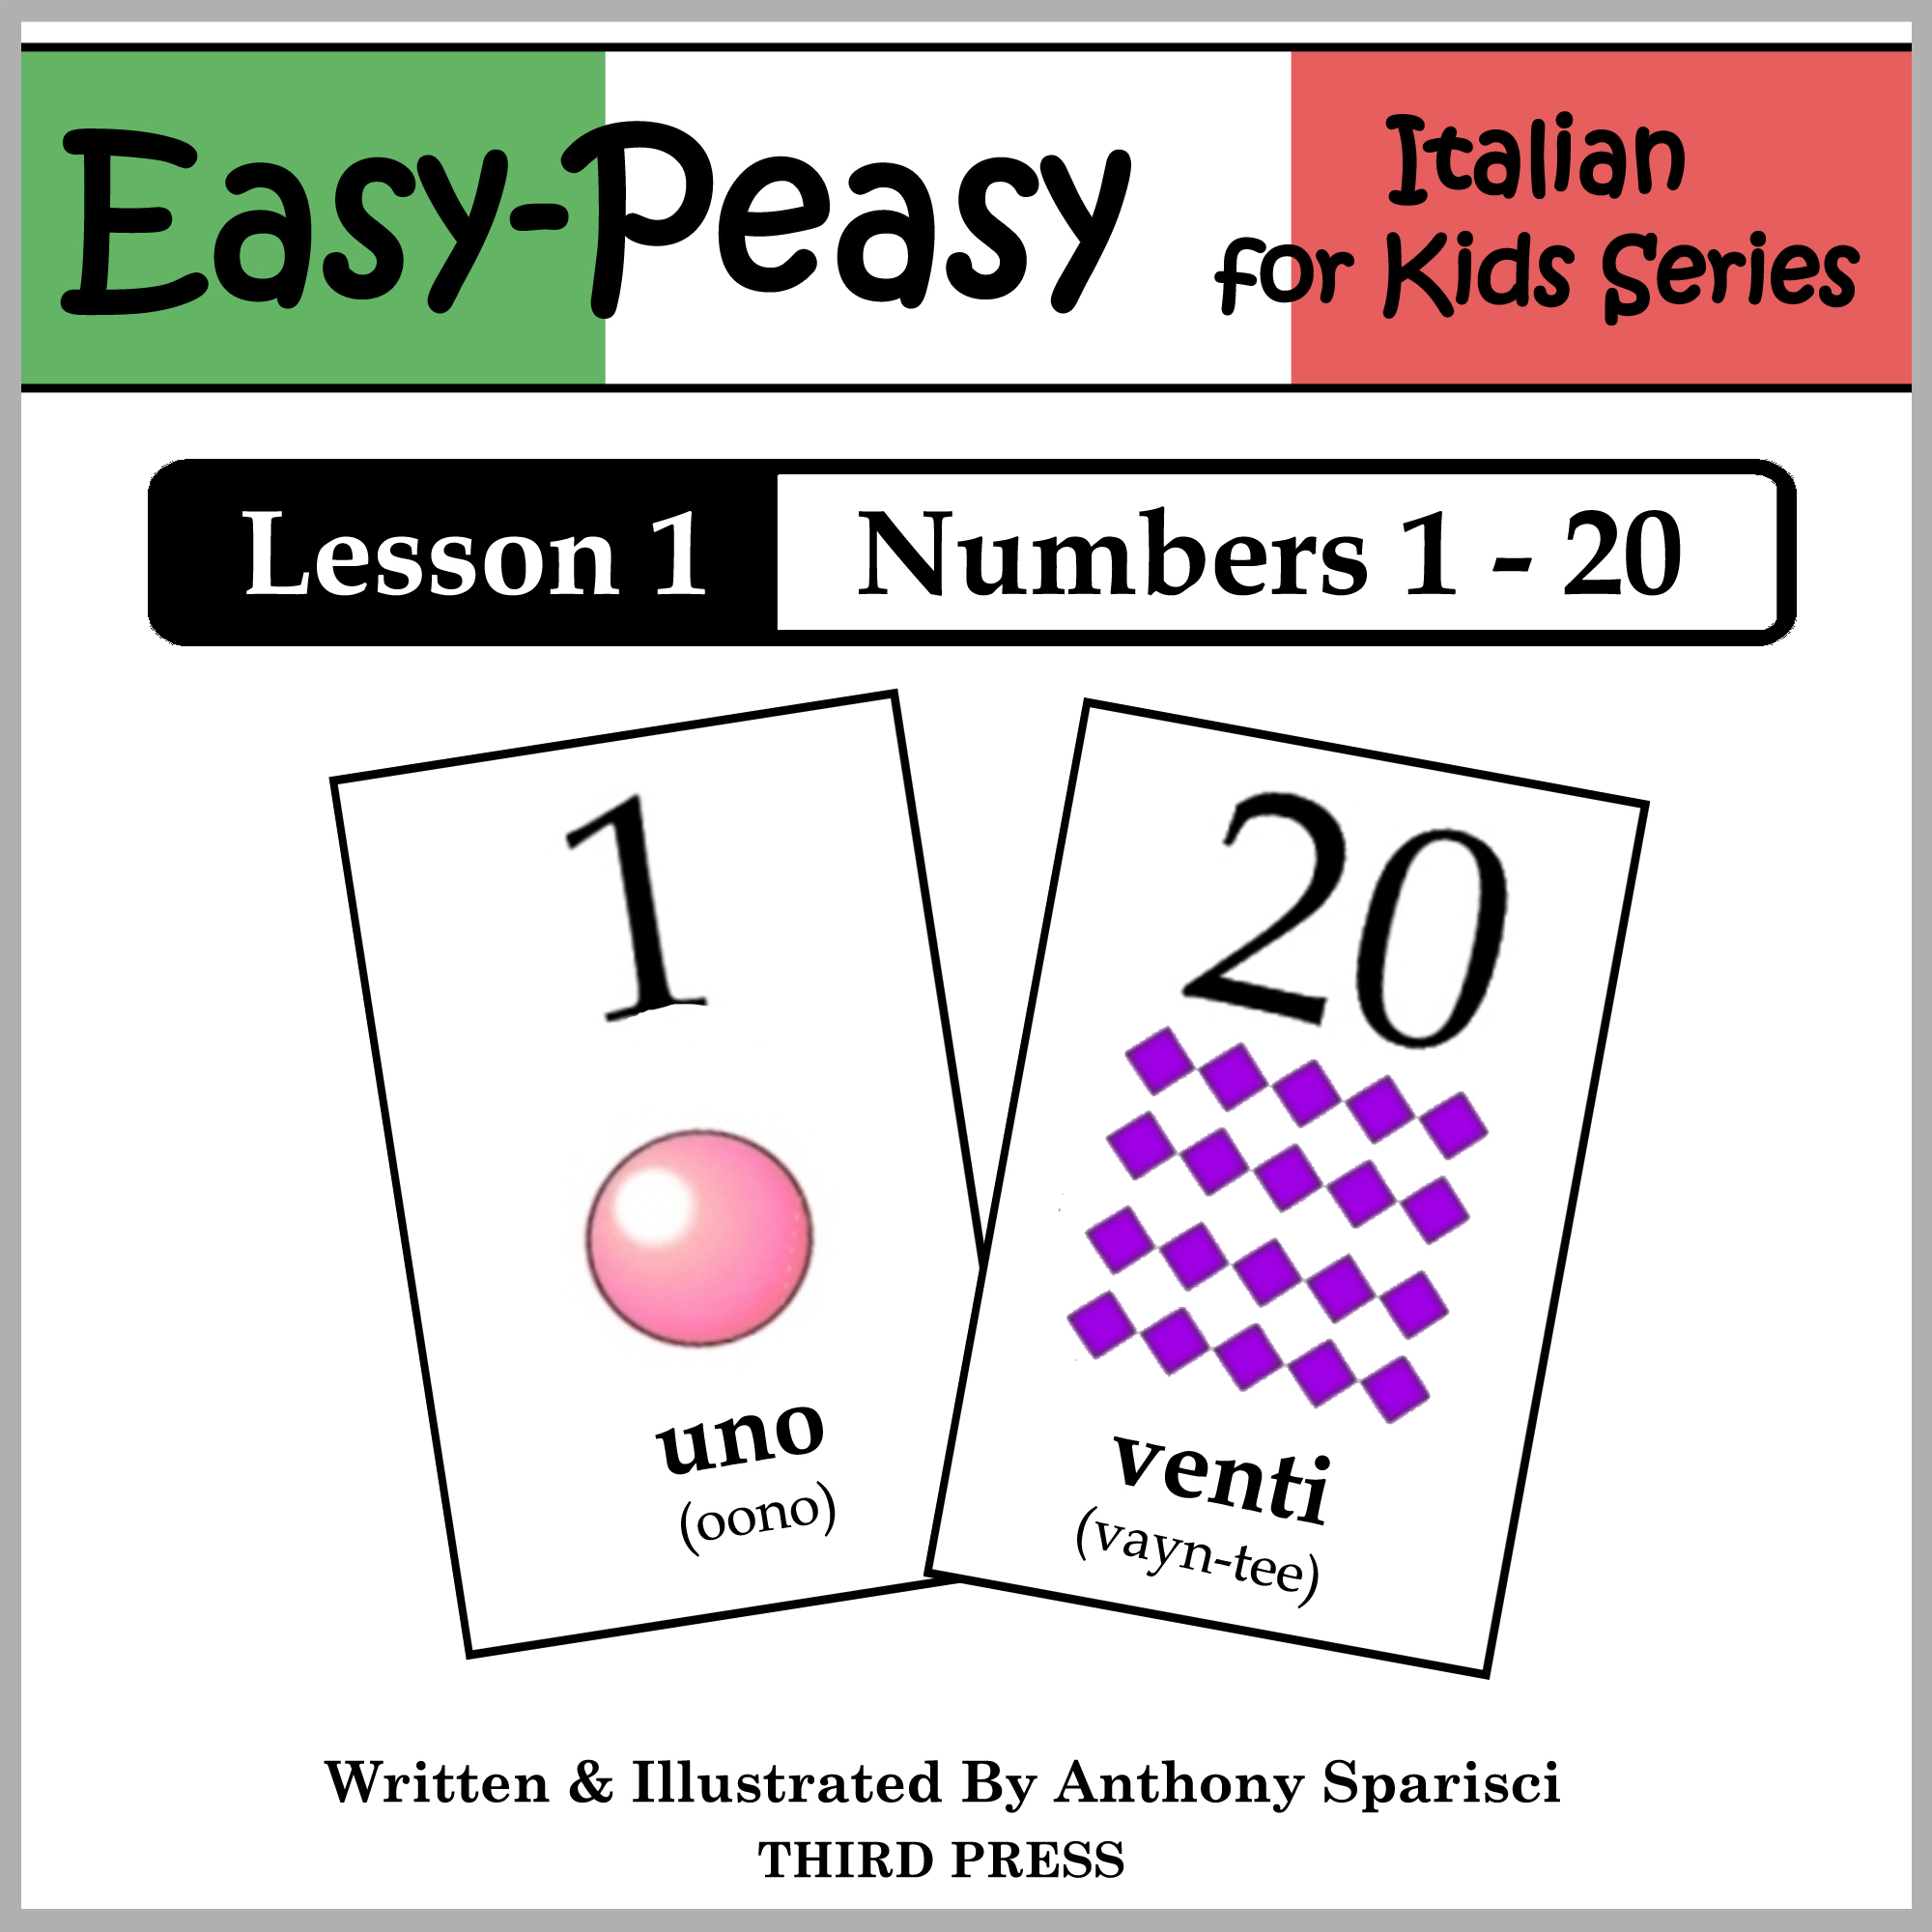 Italian Lesson 1: Numbers 1 to 20